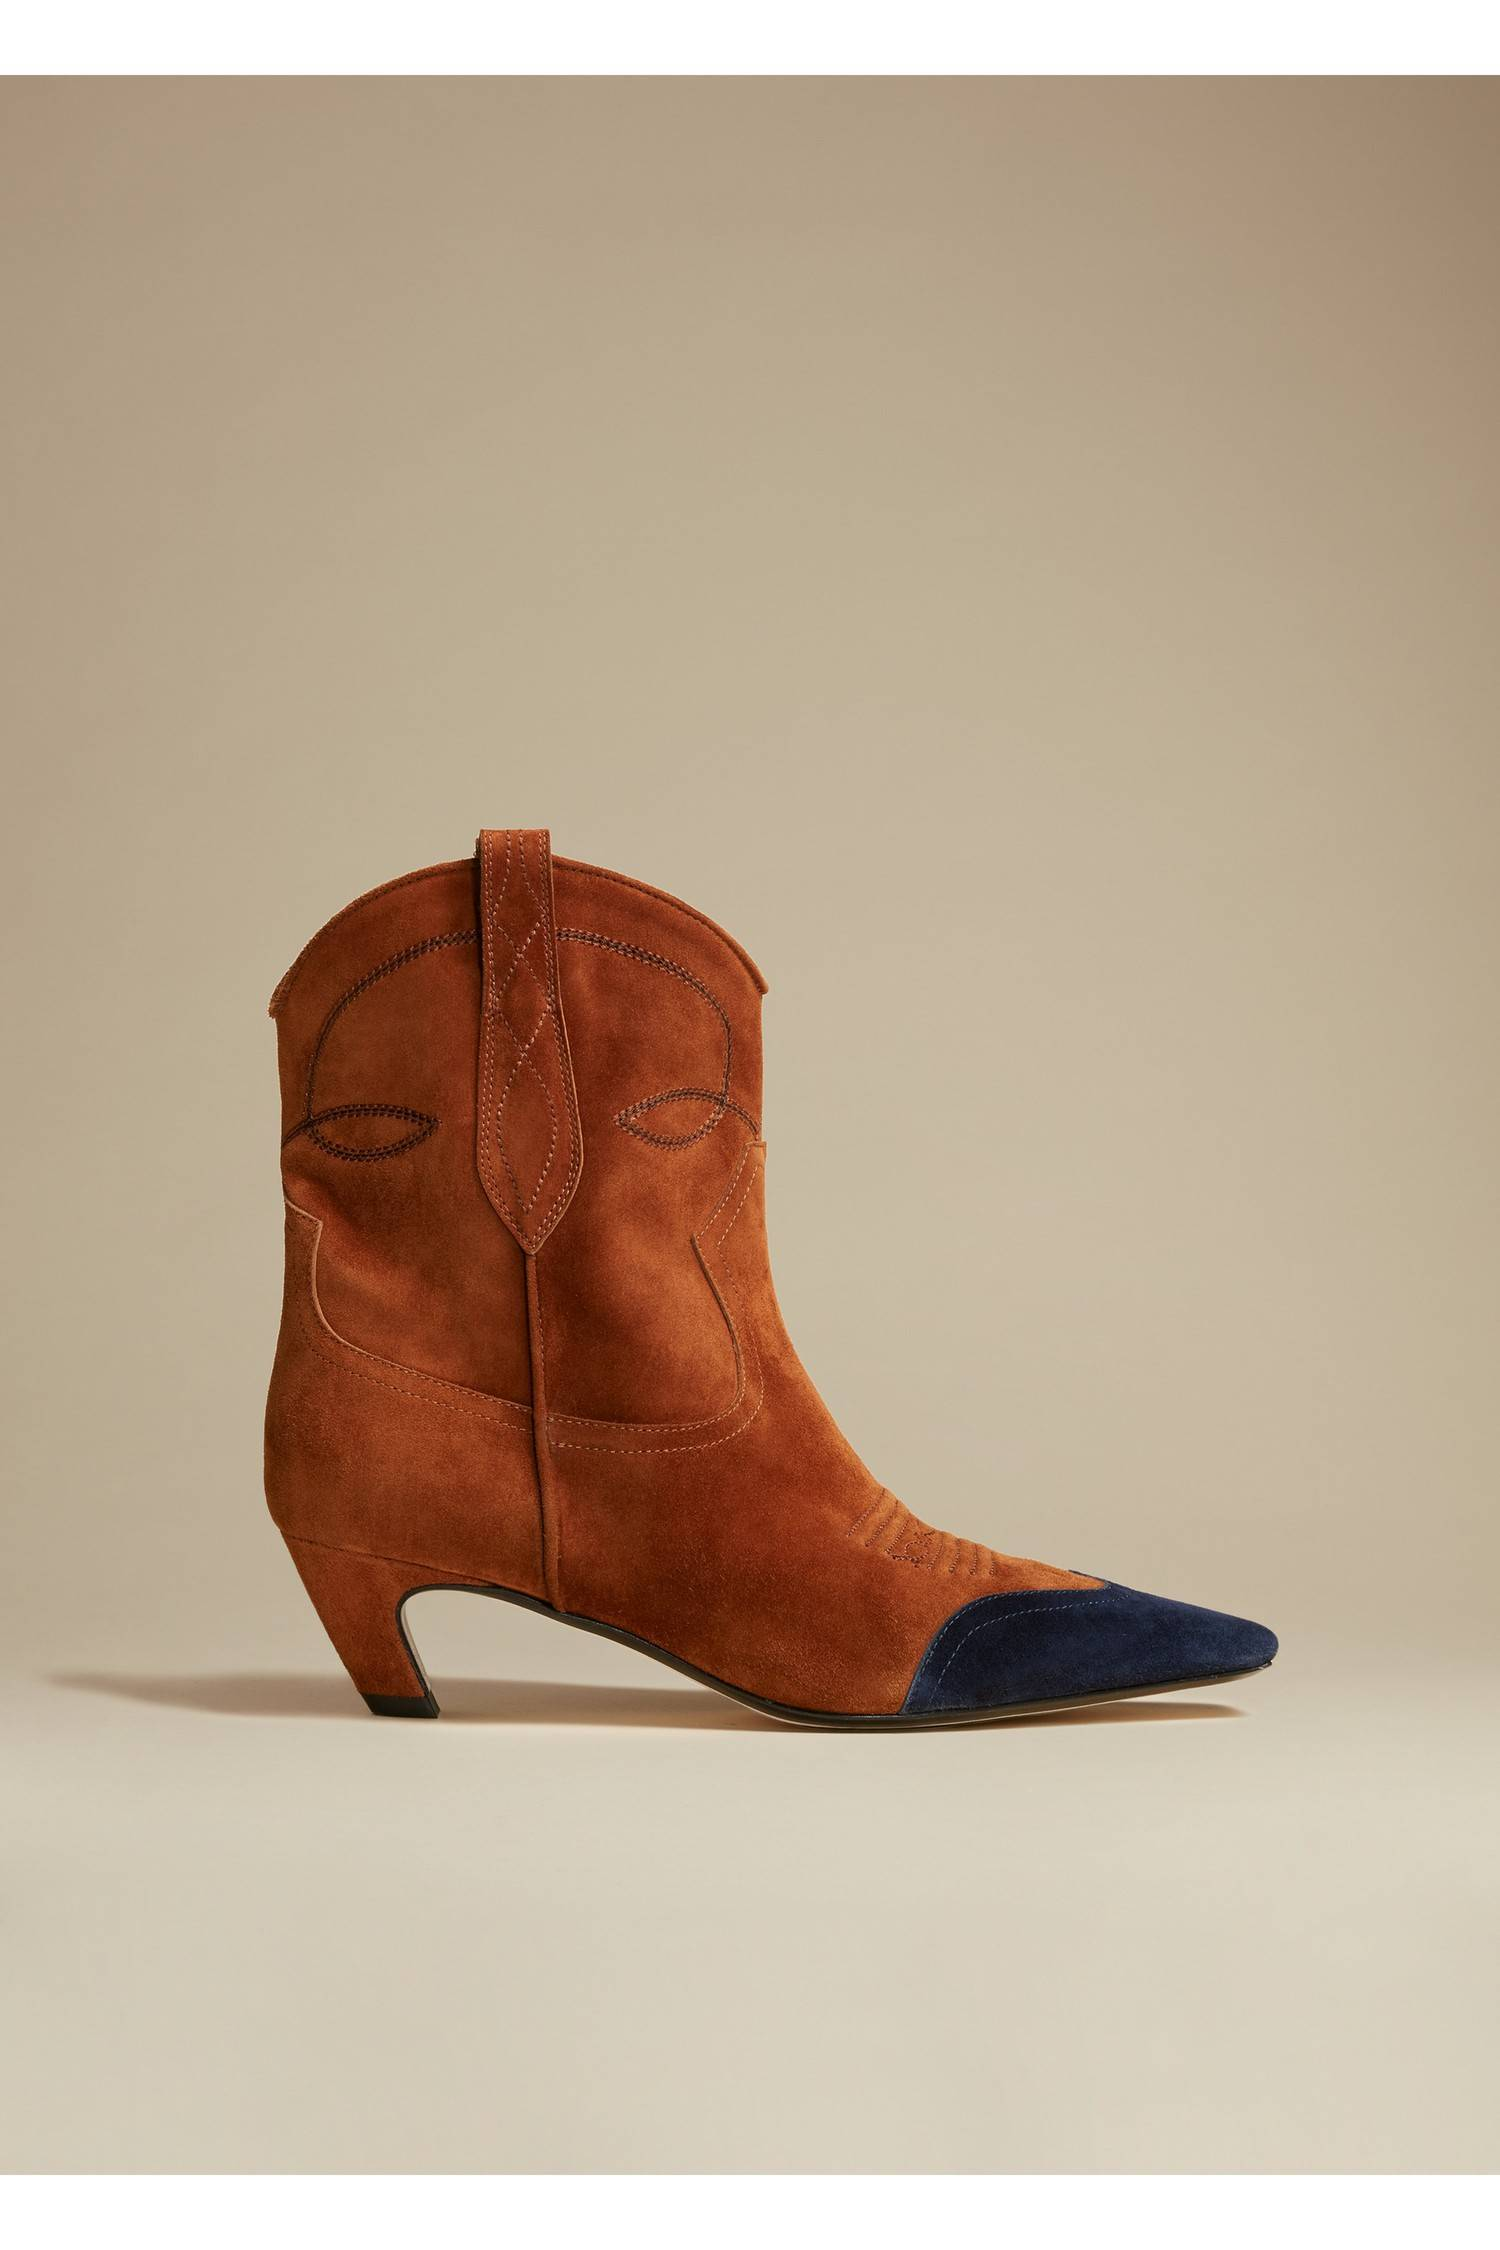 khaite dallas boot